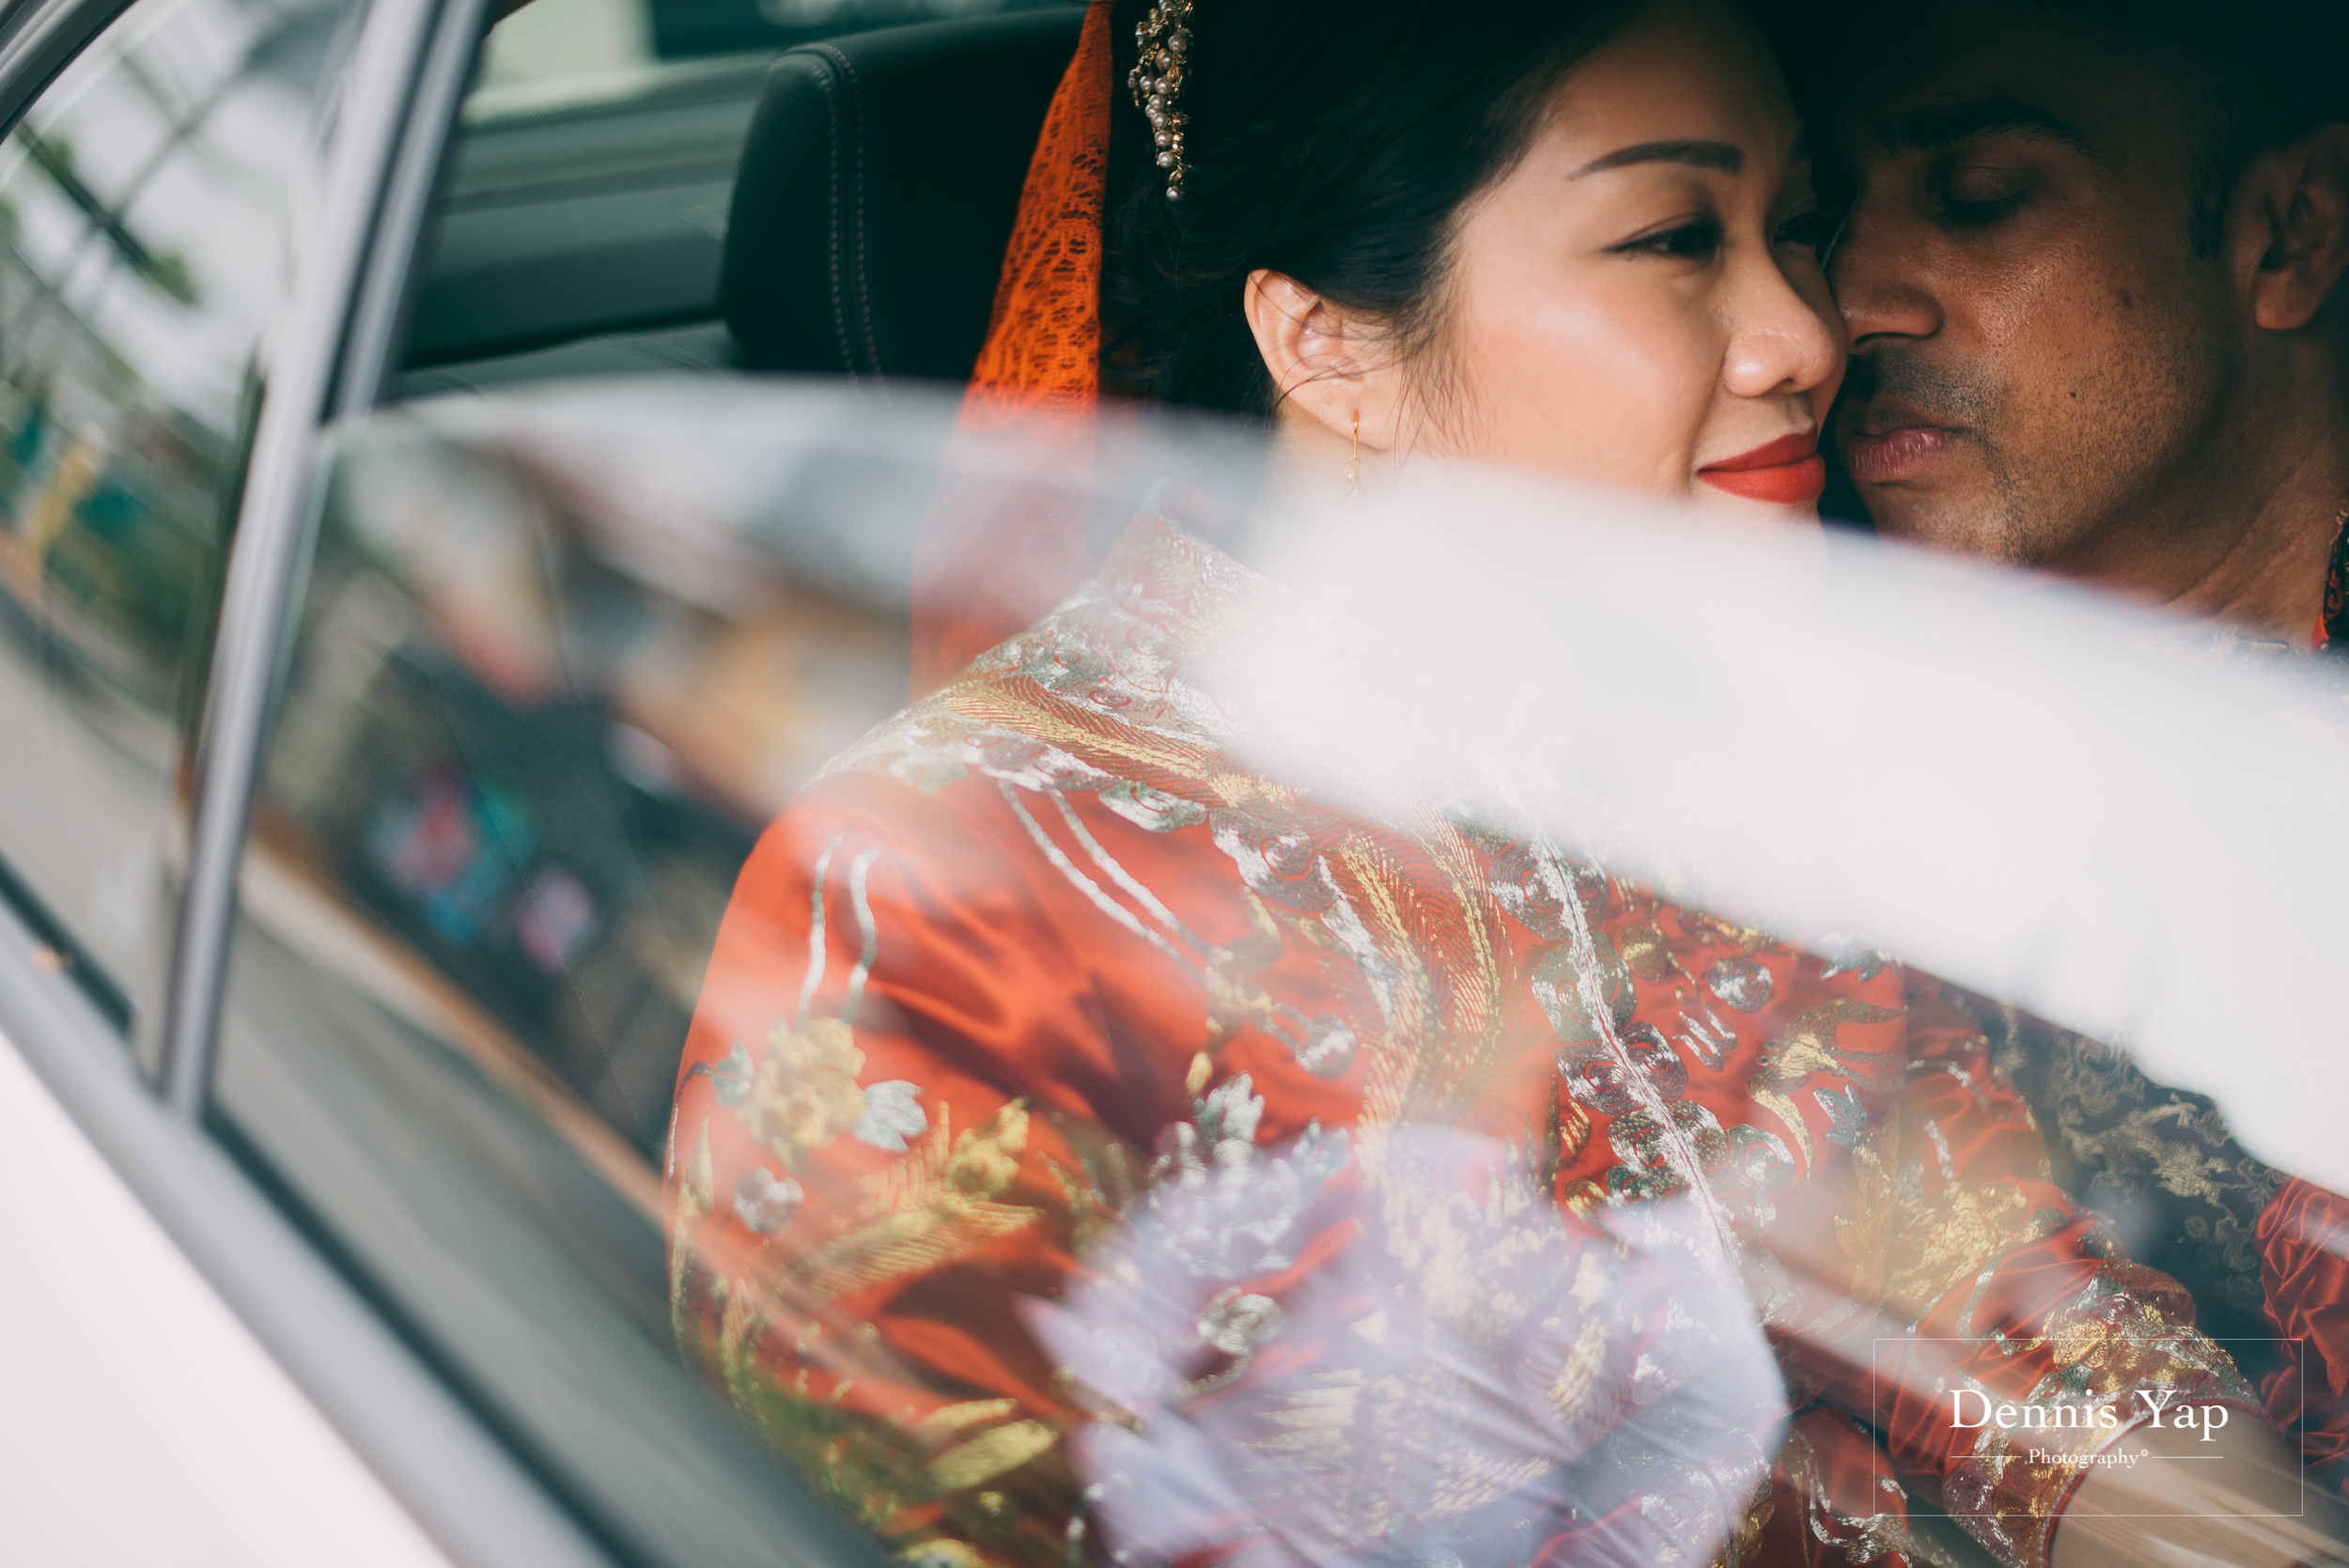 azmi zahraa wedding day gate crash traditional chinese and malay wedding dennis yap malaysia photographer-29.jpg